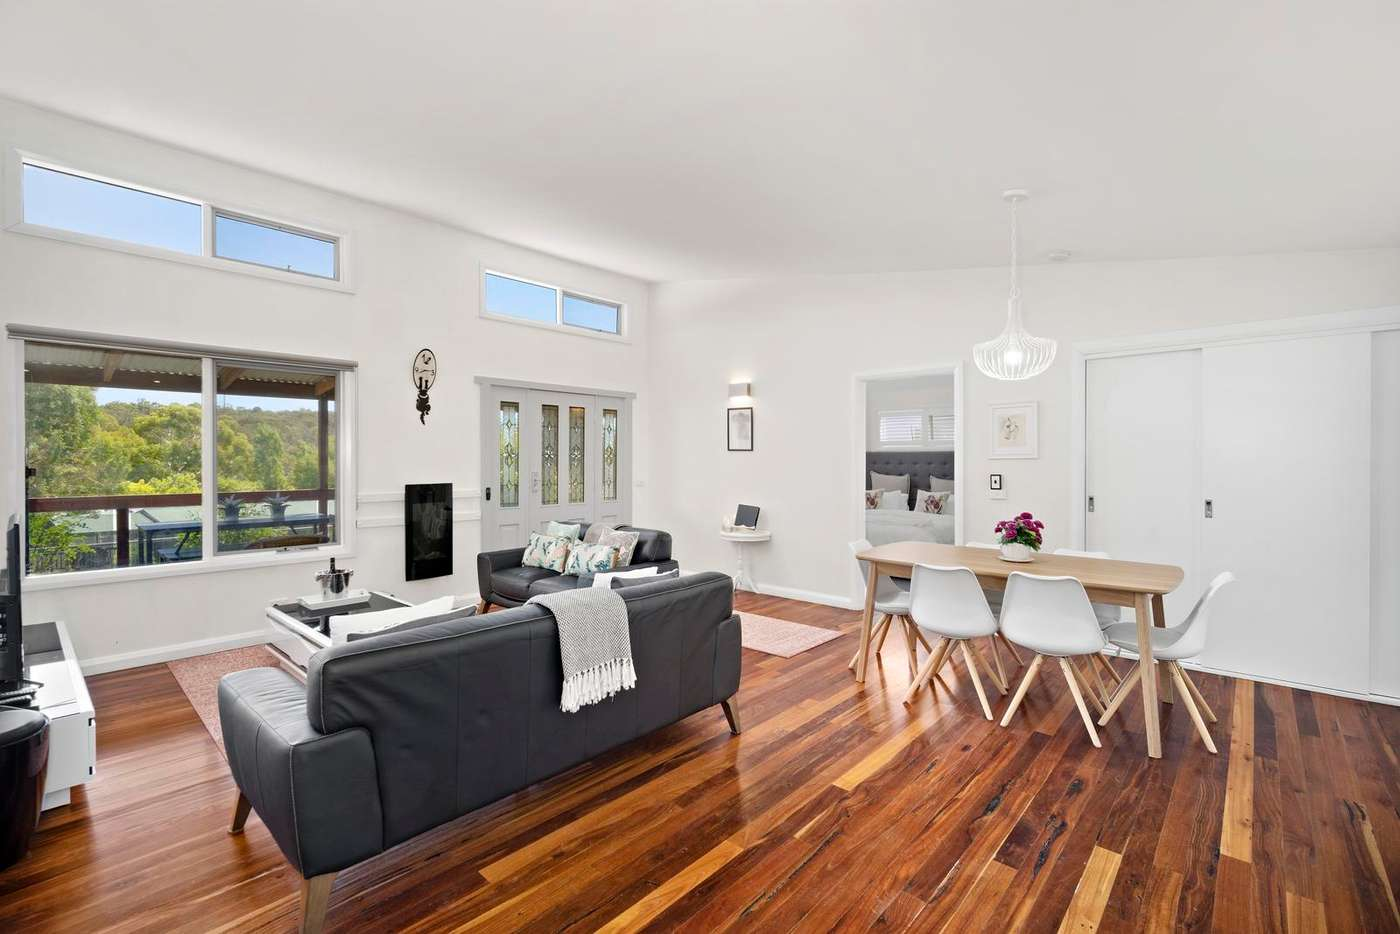 Fifth view of Homely house listing, 8 Sixth Street, Hepburn Springs VIC 3461